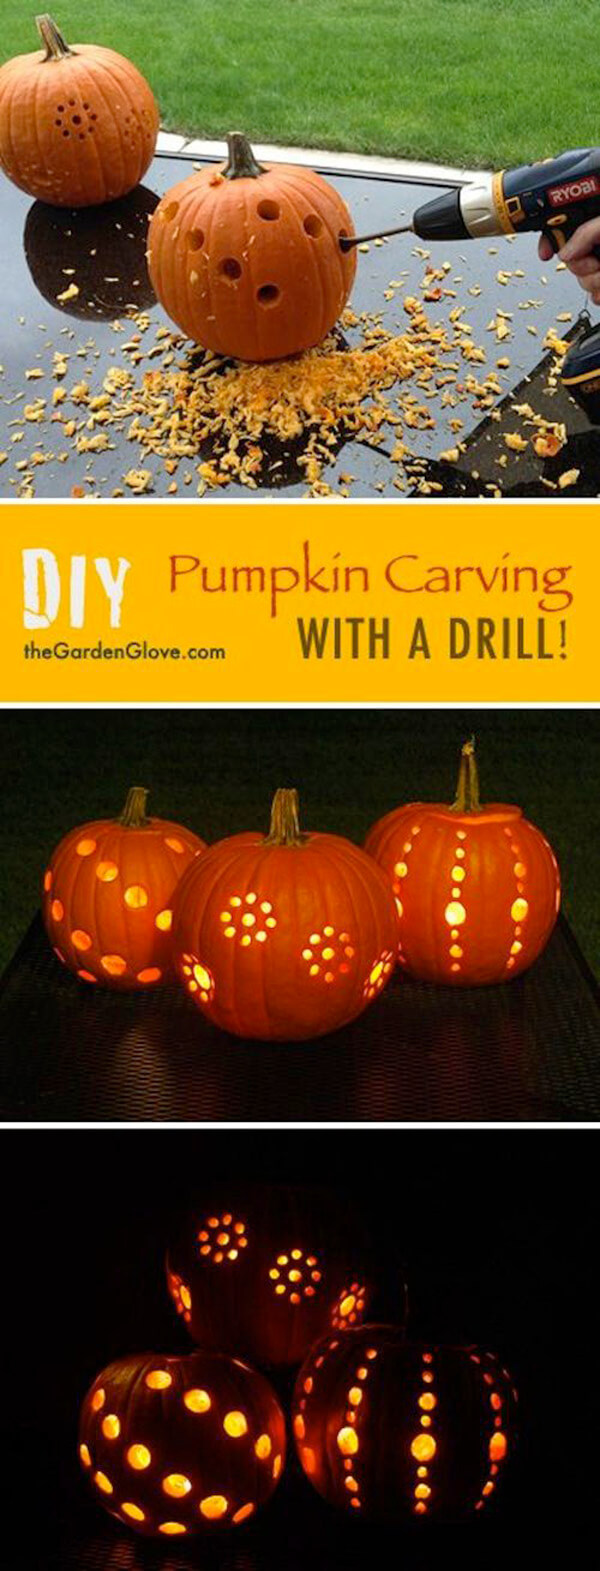 More Drilling Ideas